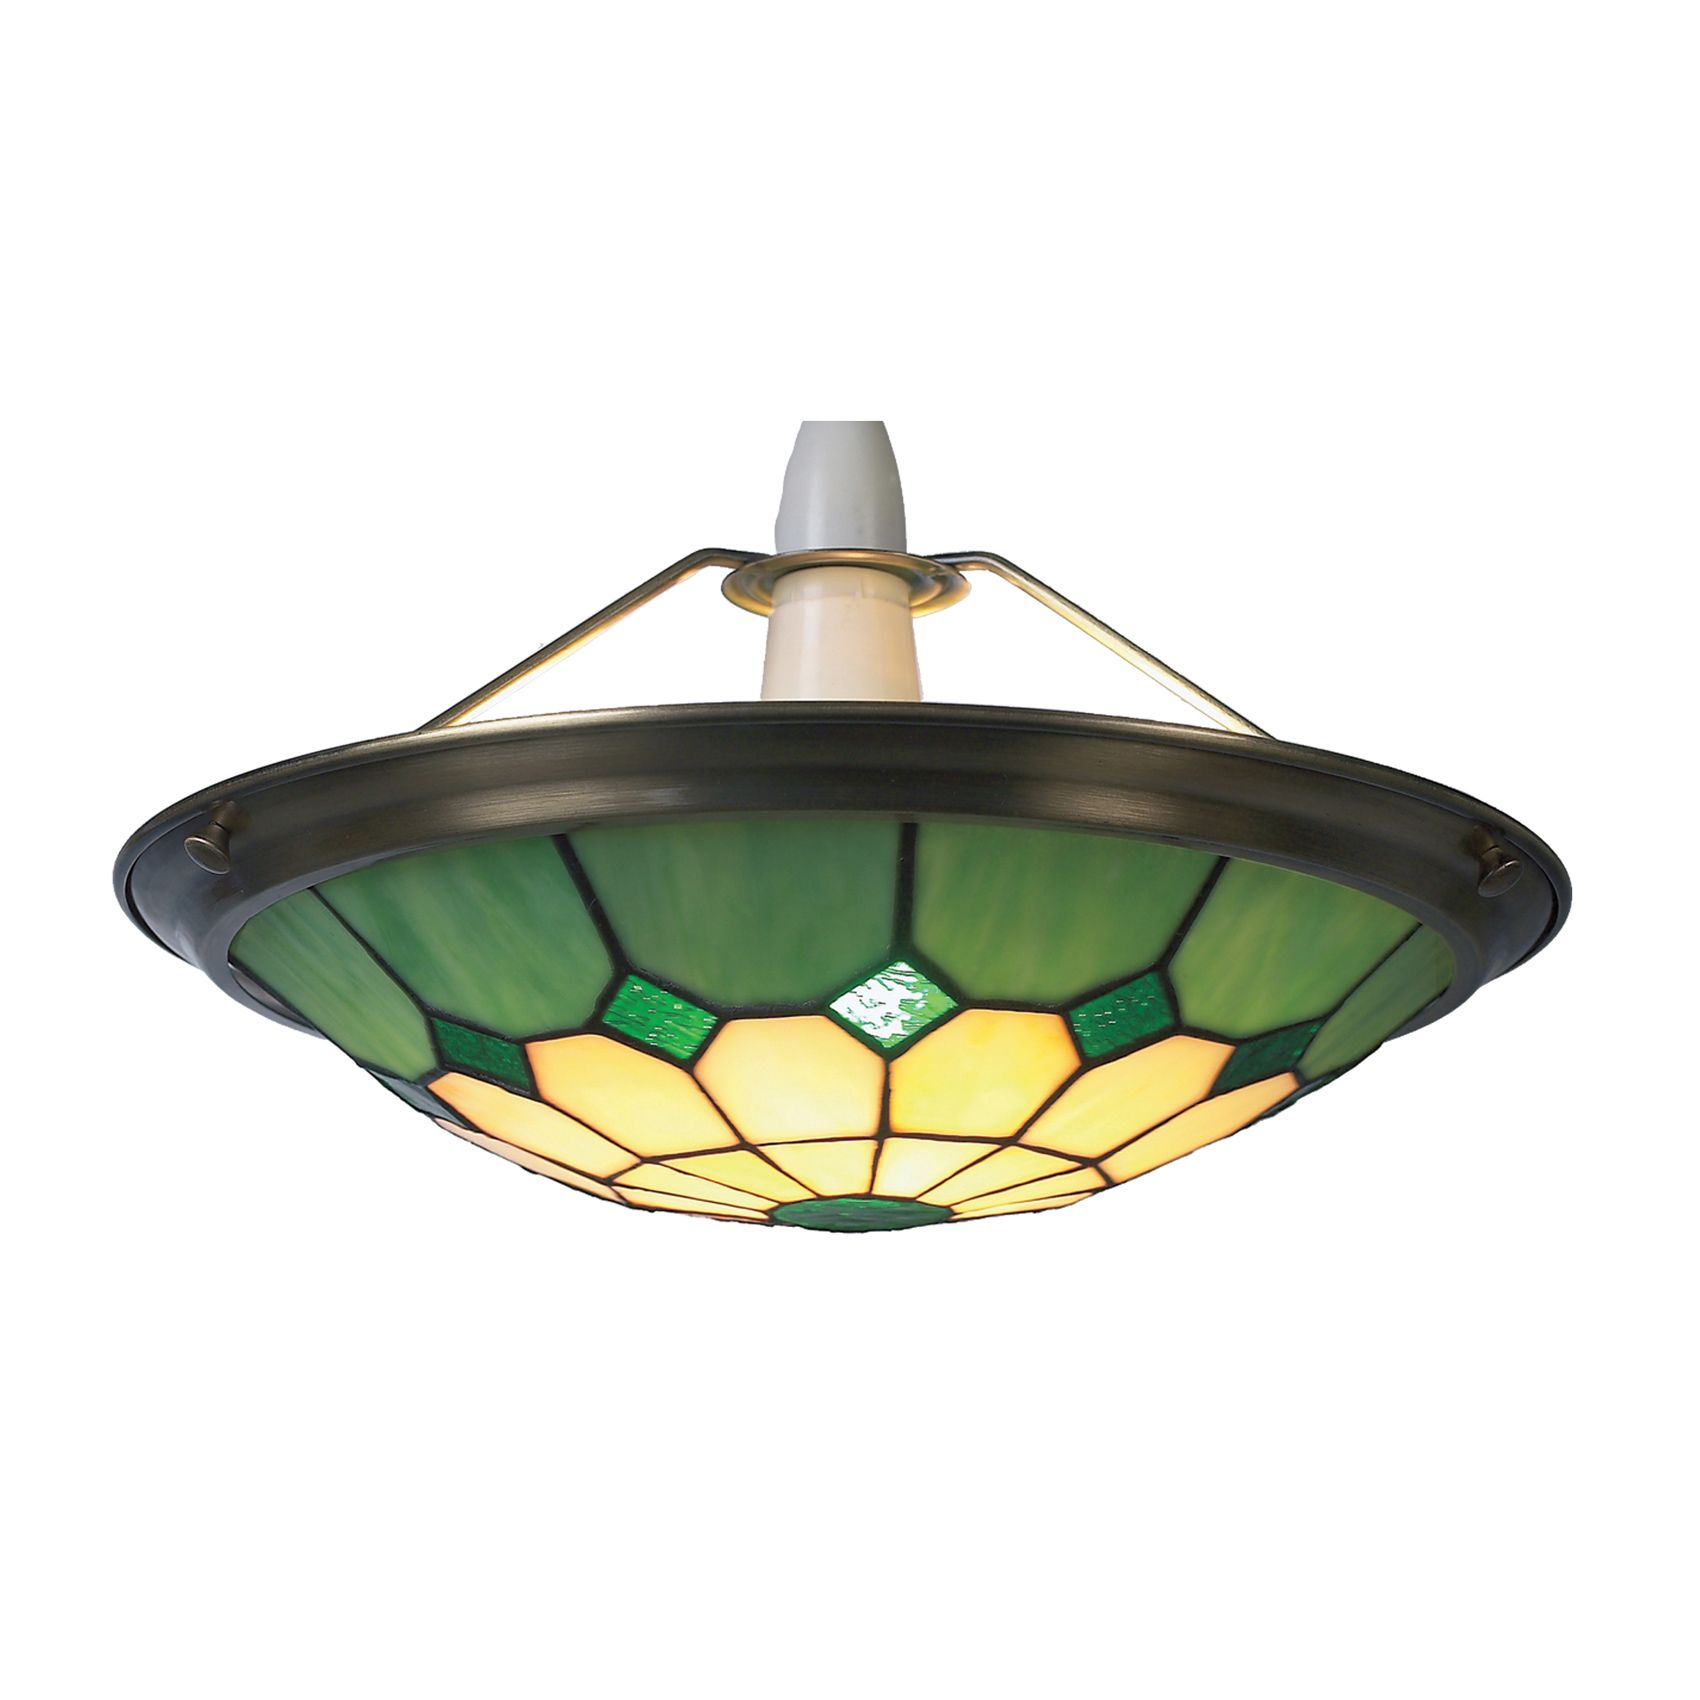 tiffany ceiling lamps product tiffany bistro green. Black Bedroom Furniture Sets. Home Design Ideas